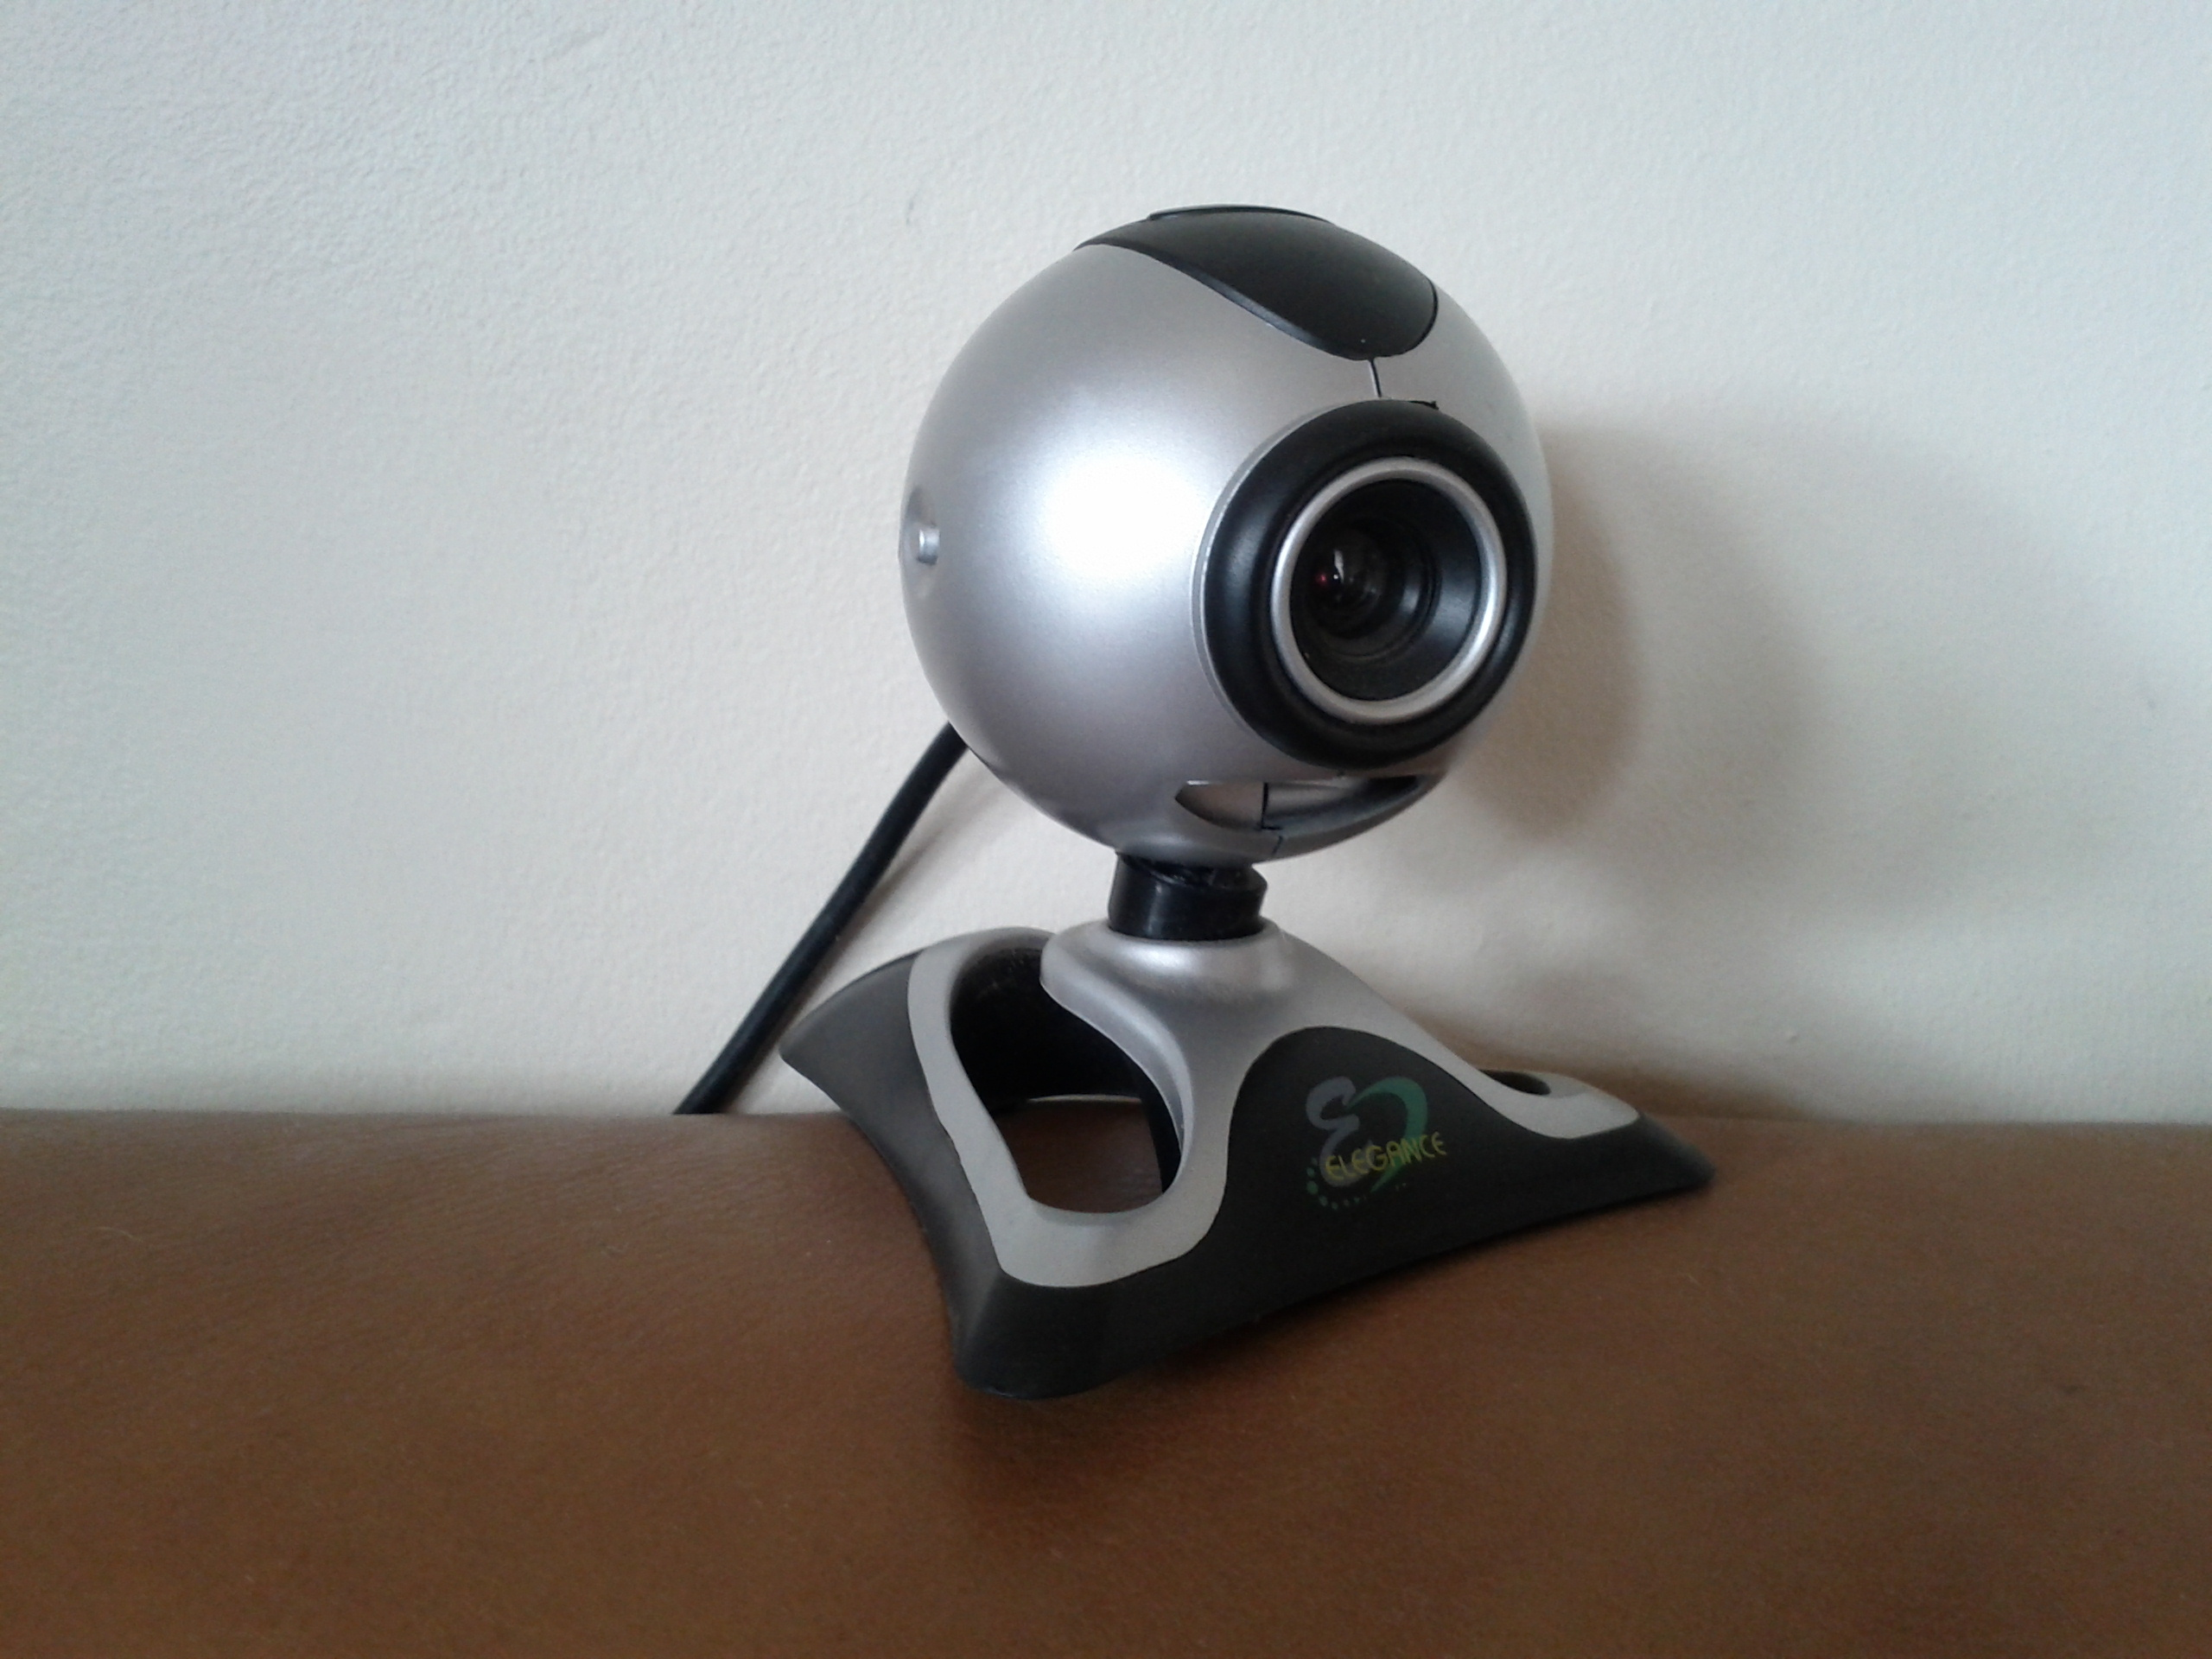 Image Result For Are Cctv Cameras An Invasion Of Privacy